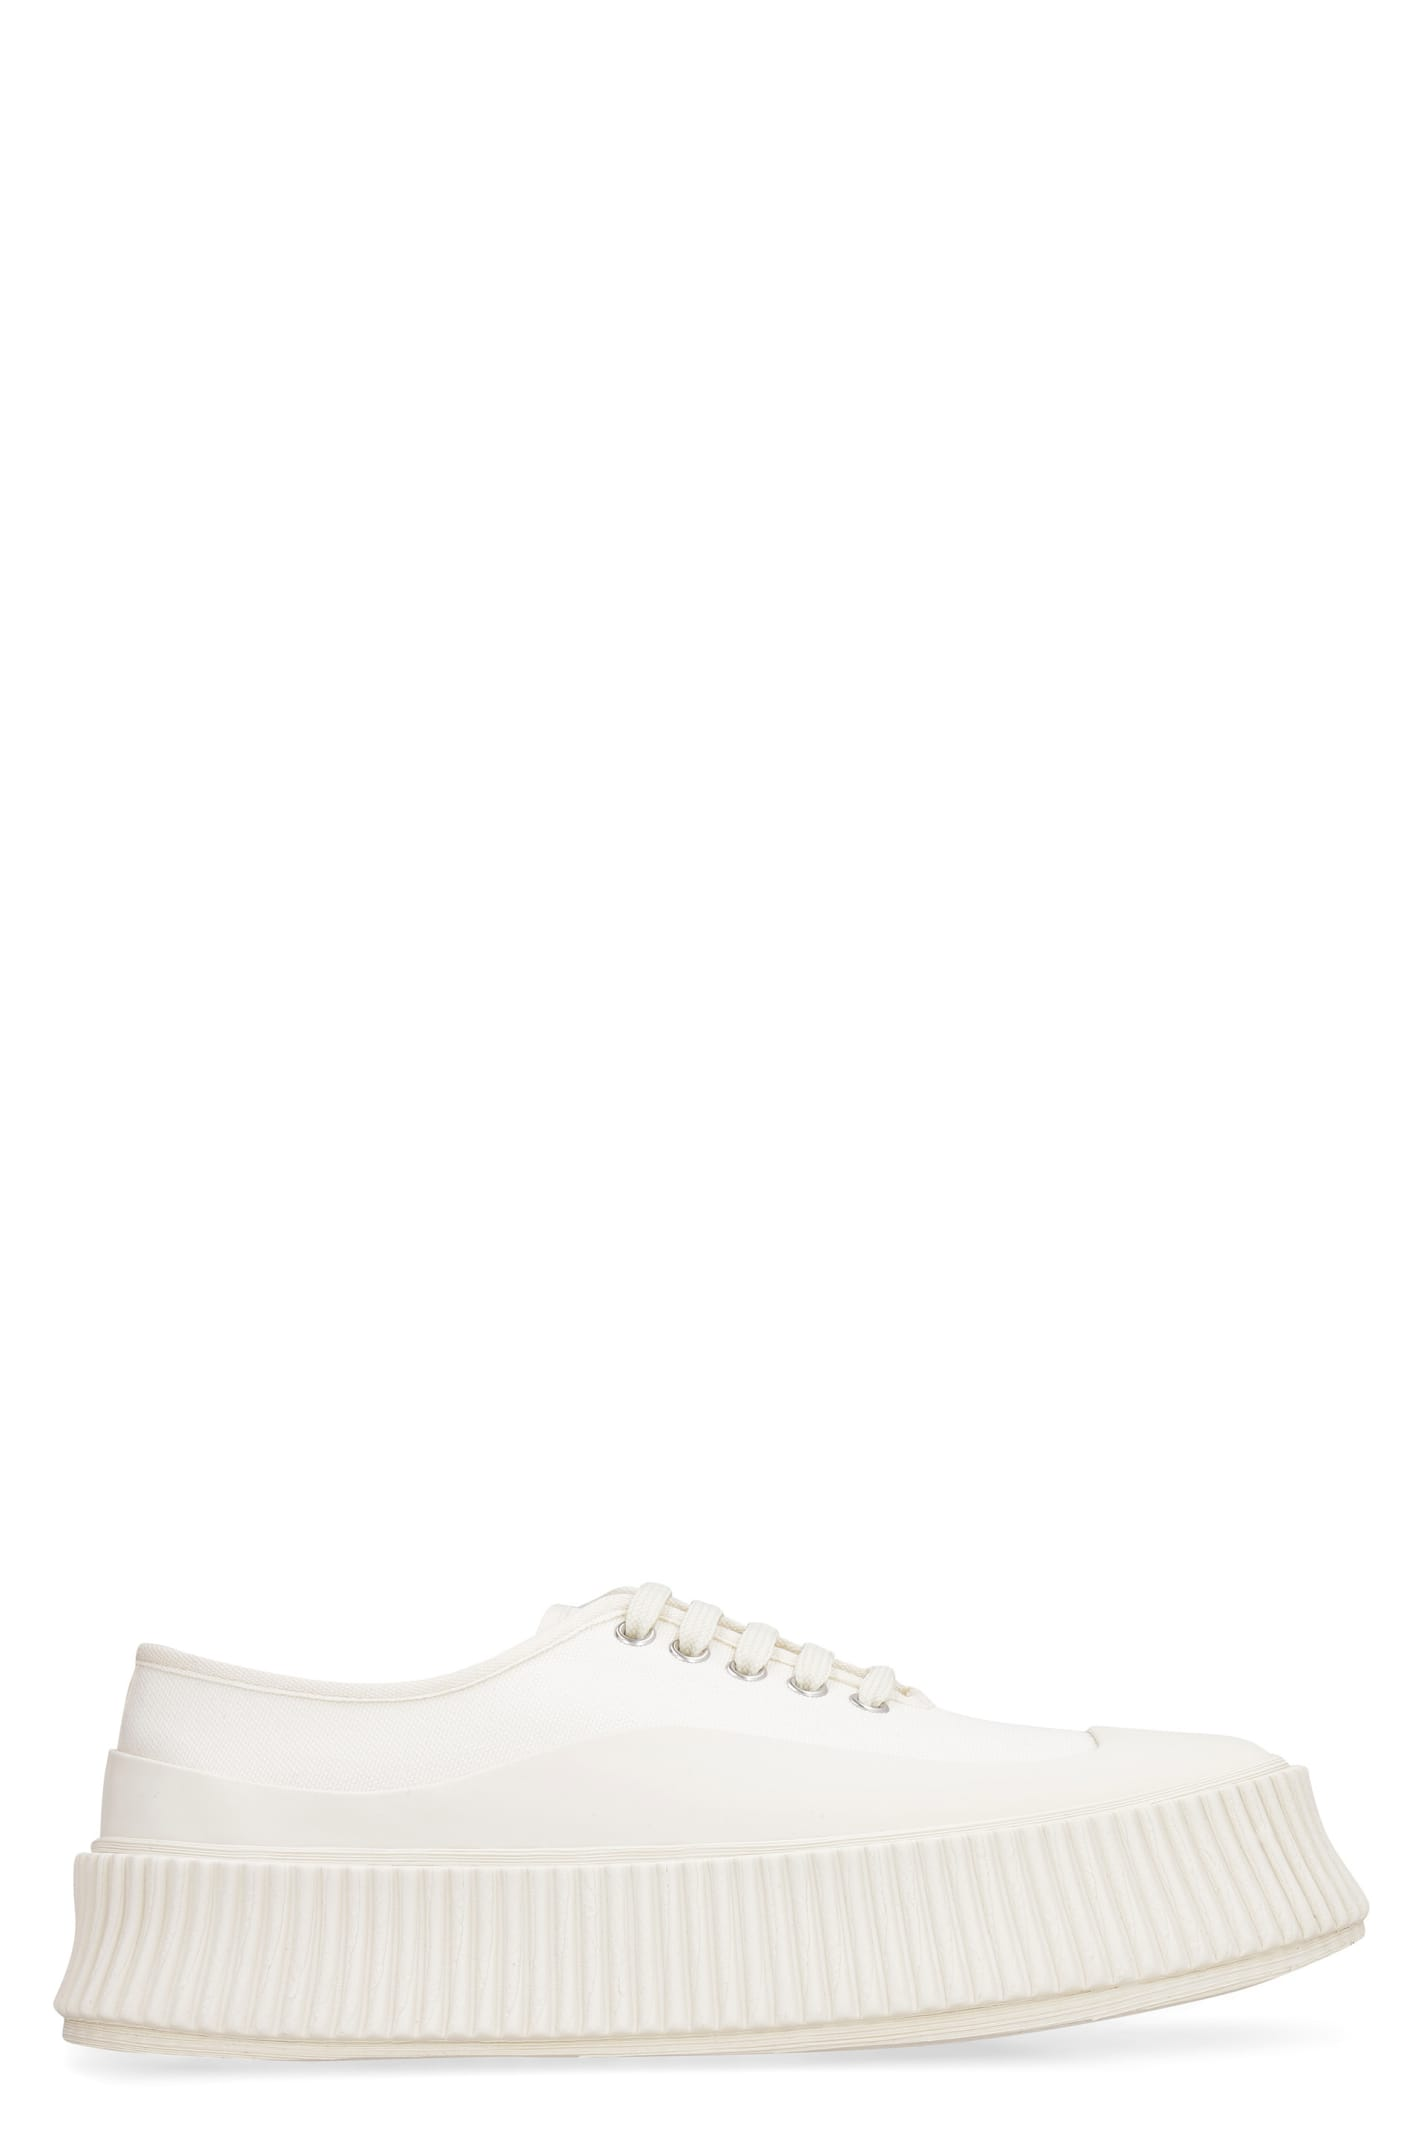 Buy Jil Sander Chunky Sneakers online, shop Jil Sander shoes with free shipping